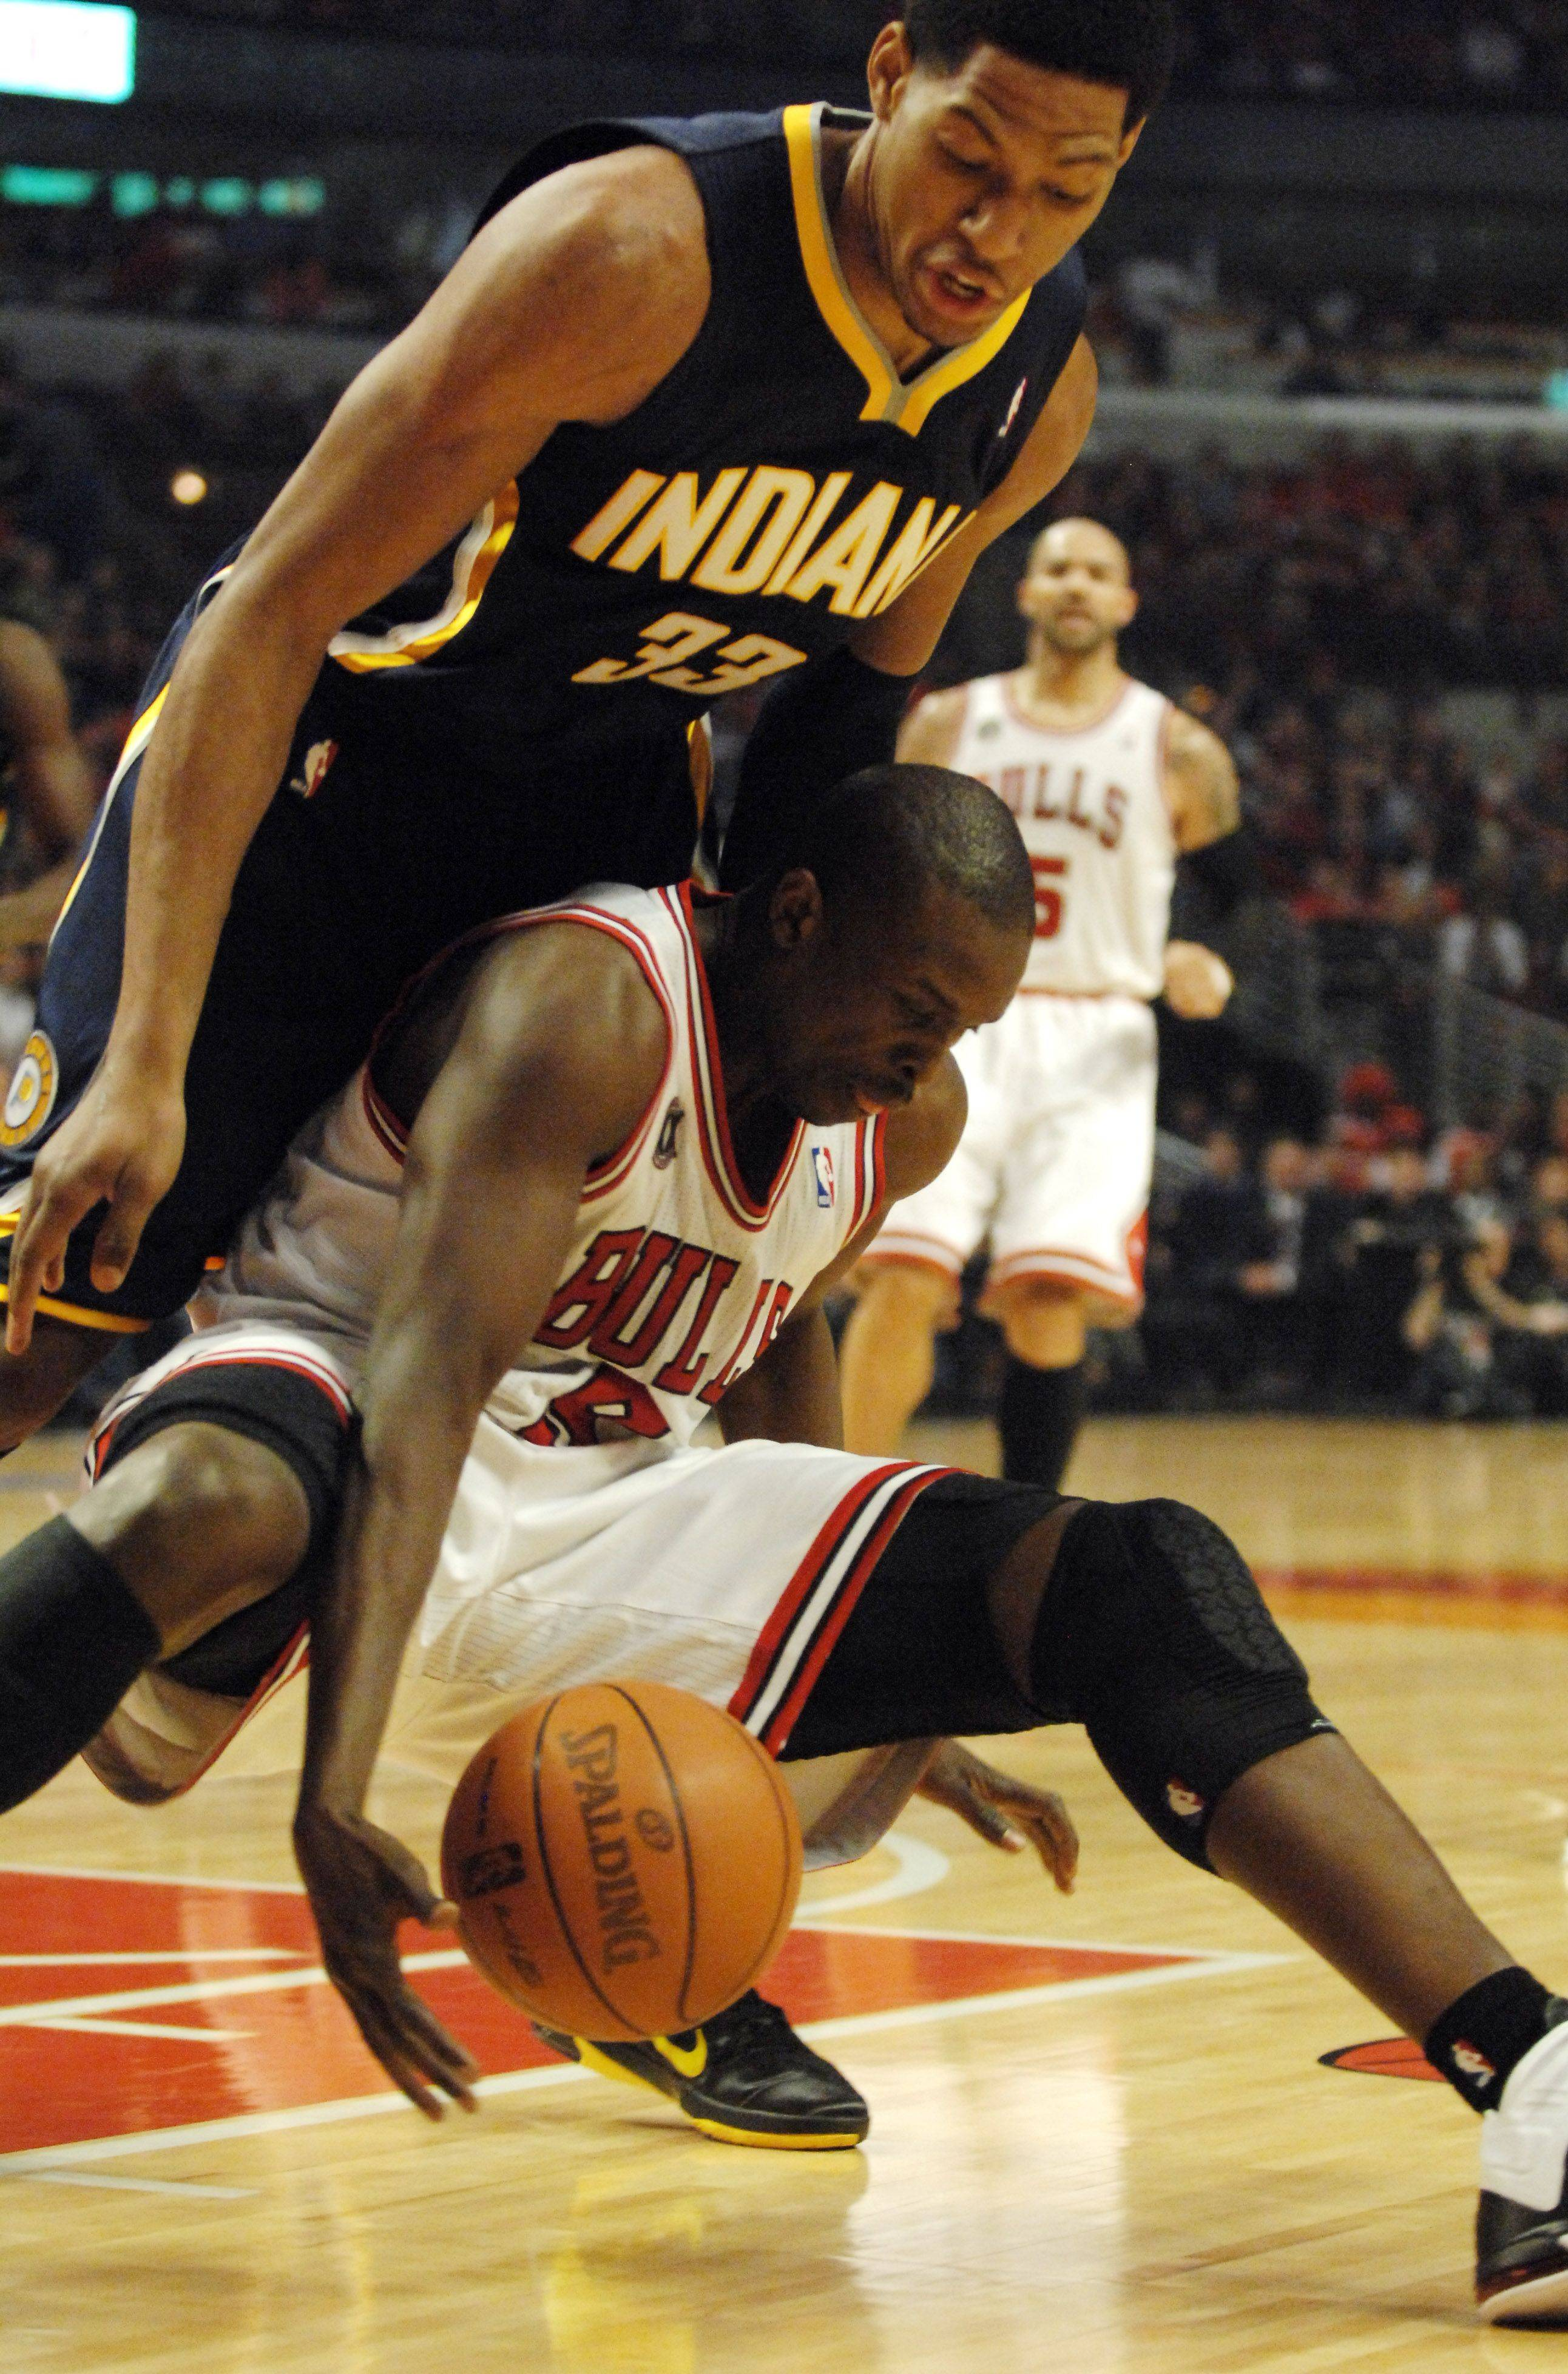 Chicago Bulls small forward Luol Deng (9) and Indiana Pacers small forward Danny Granger (33) battle for a loose ball during Game One of the NBA Eastern Conference Quarterfinals Saturday at the United Center in Chicago.